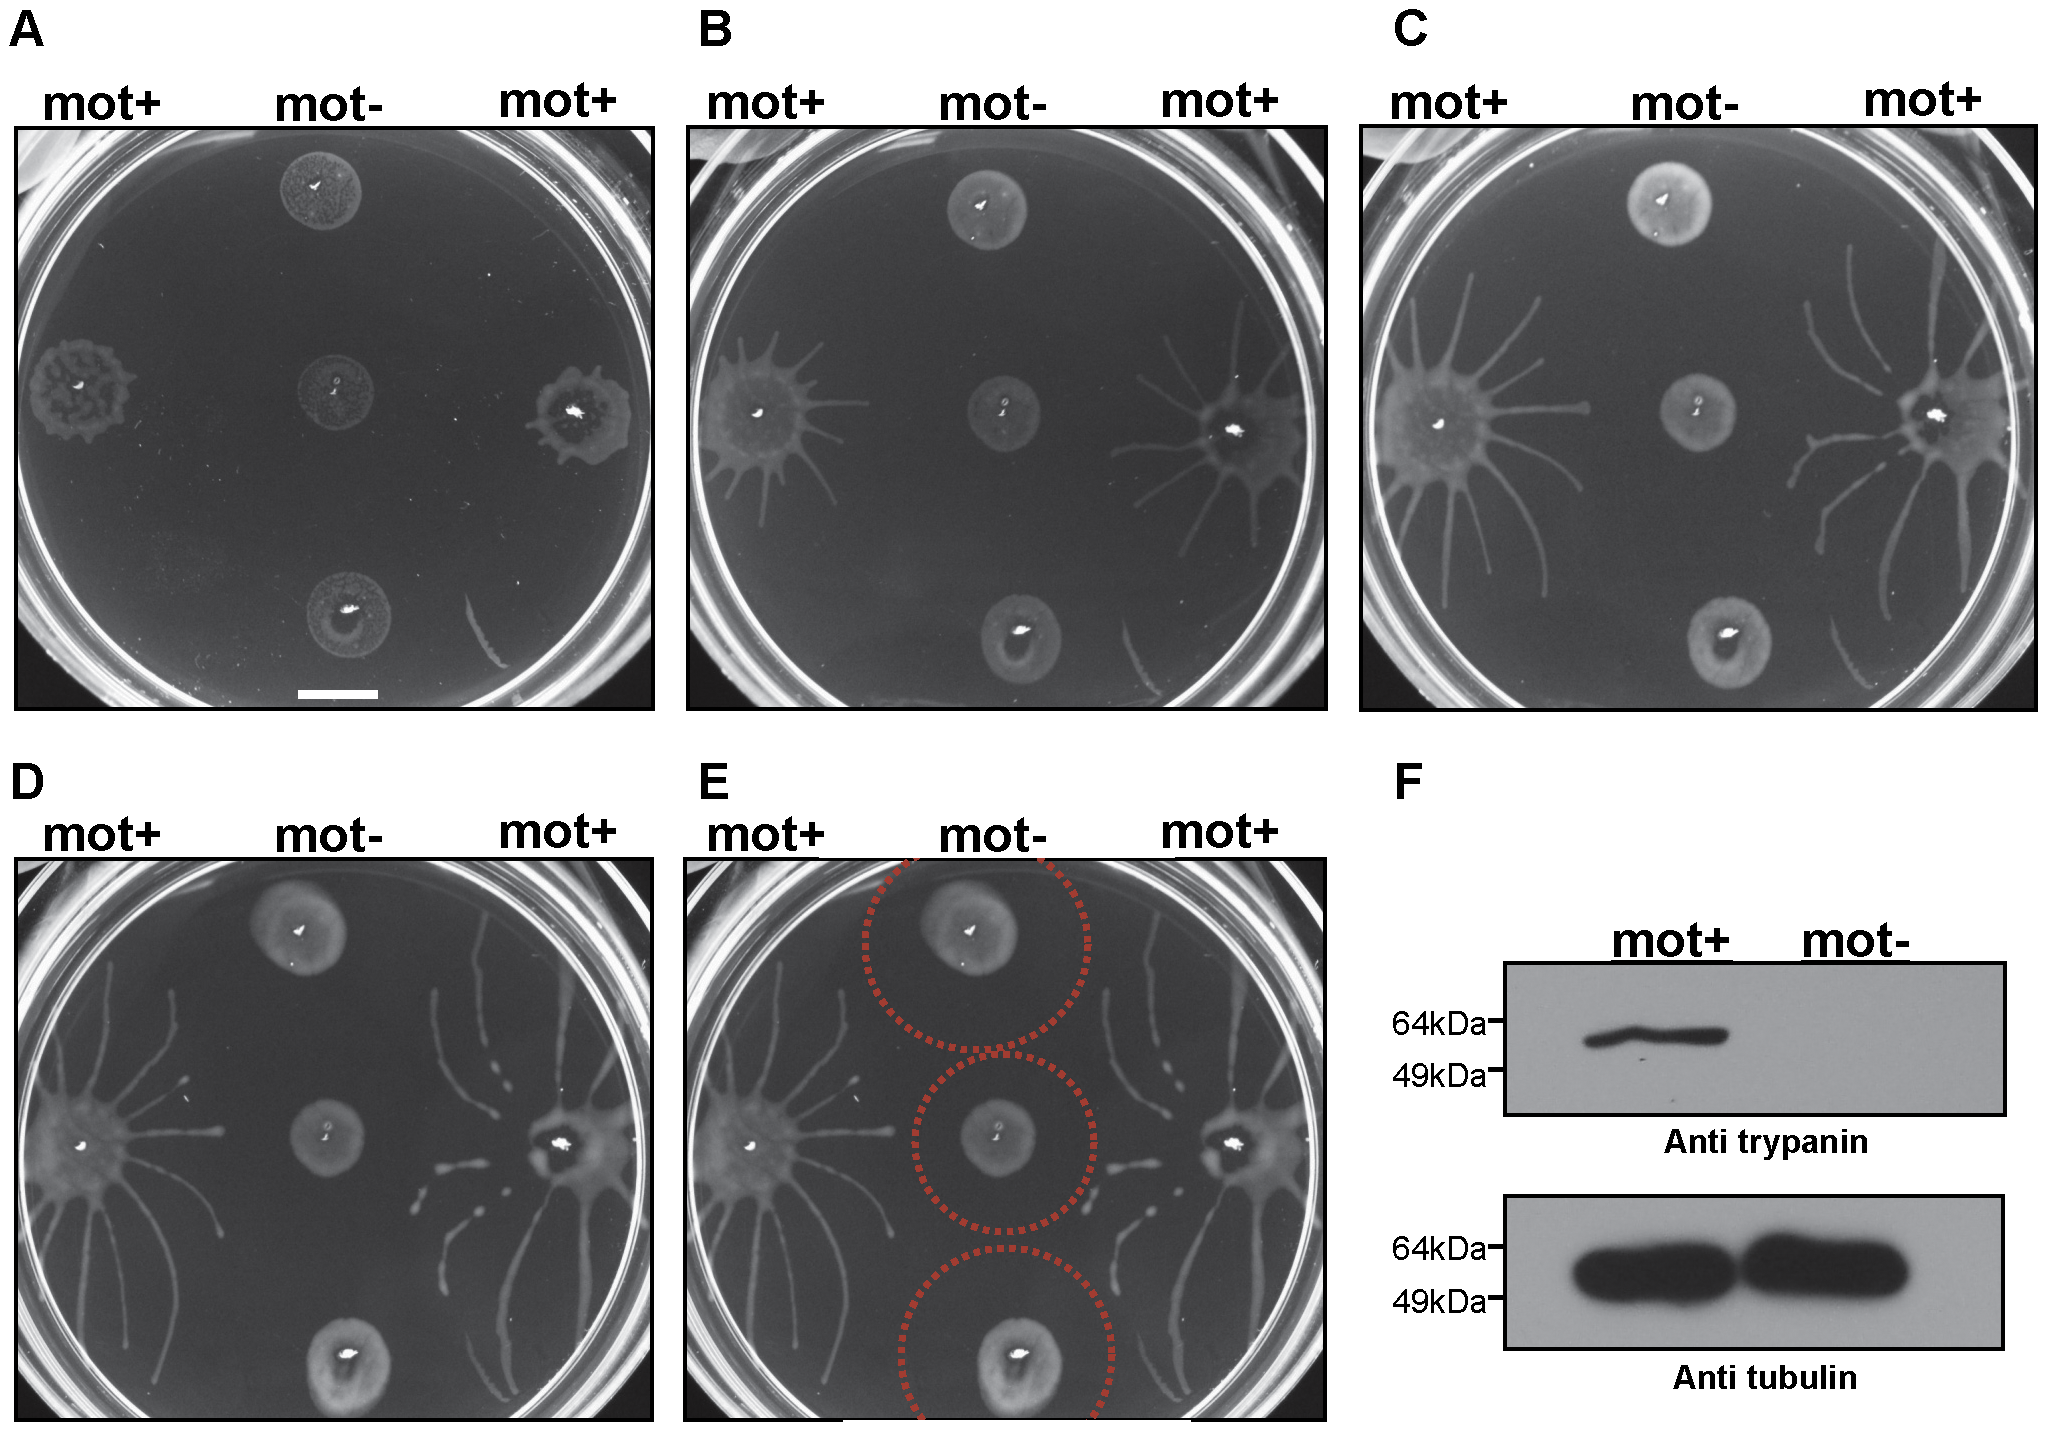 Social motility requires directional cell motility.